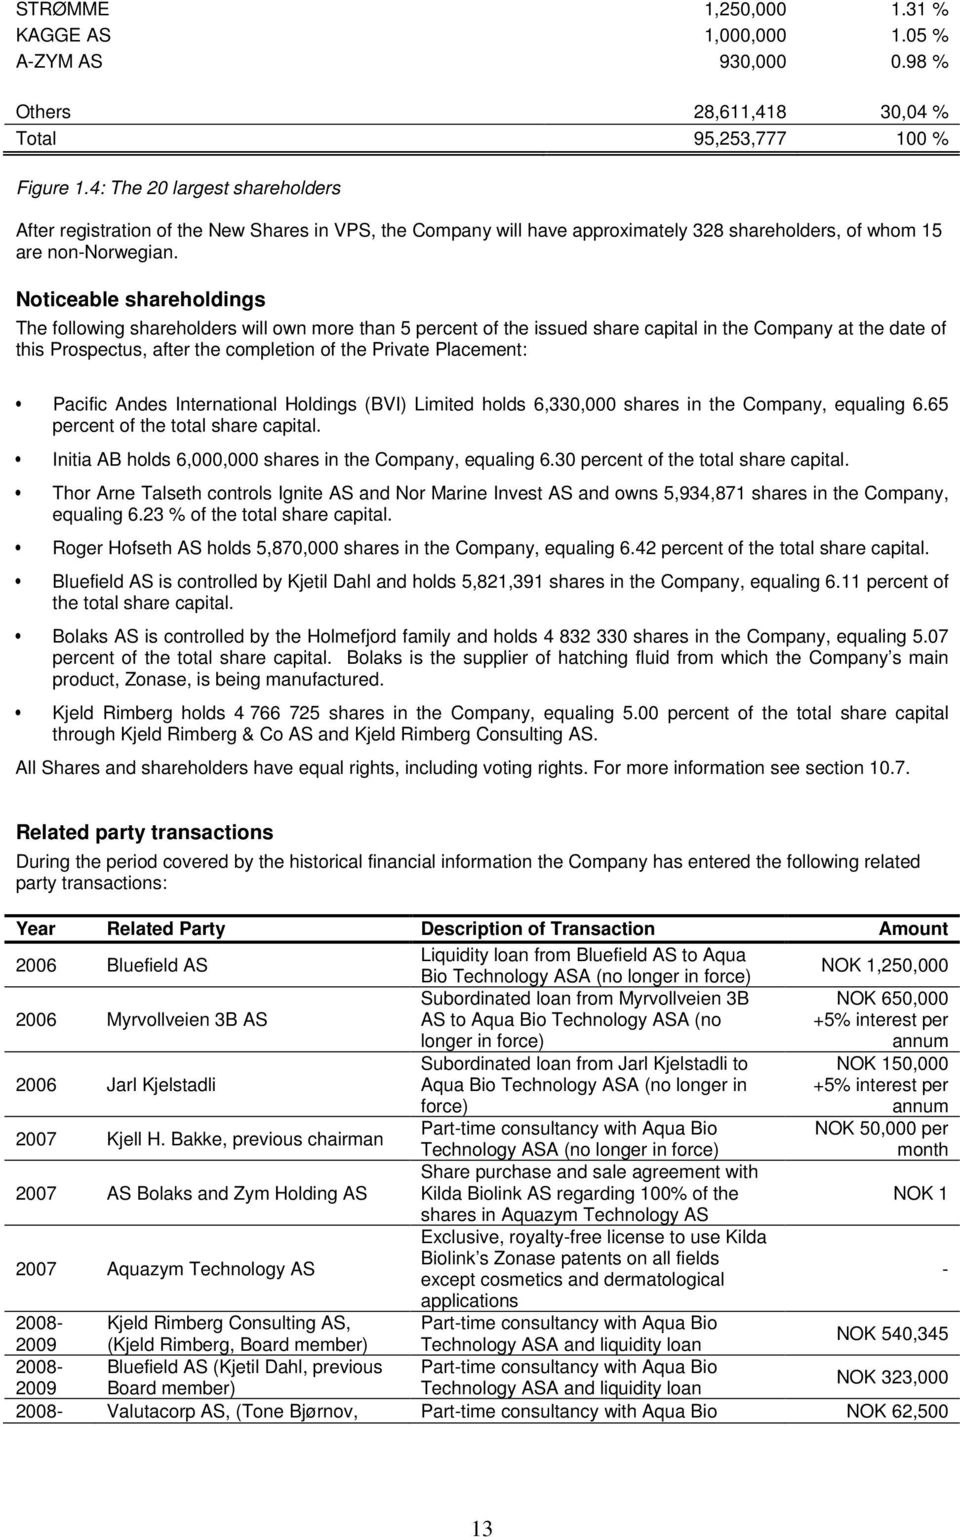 Noticeable shareholdings The following shareholders will own more than 5 percent of the issued share capital in the Company at the date of this Prospectus, after the completion of the Private